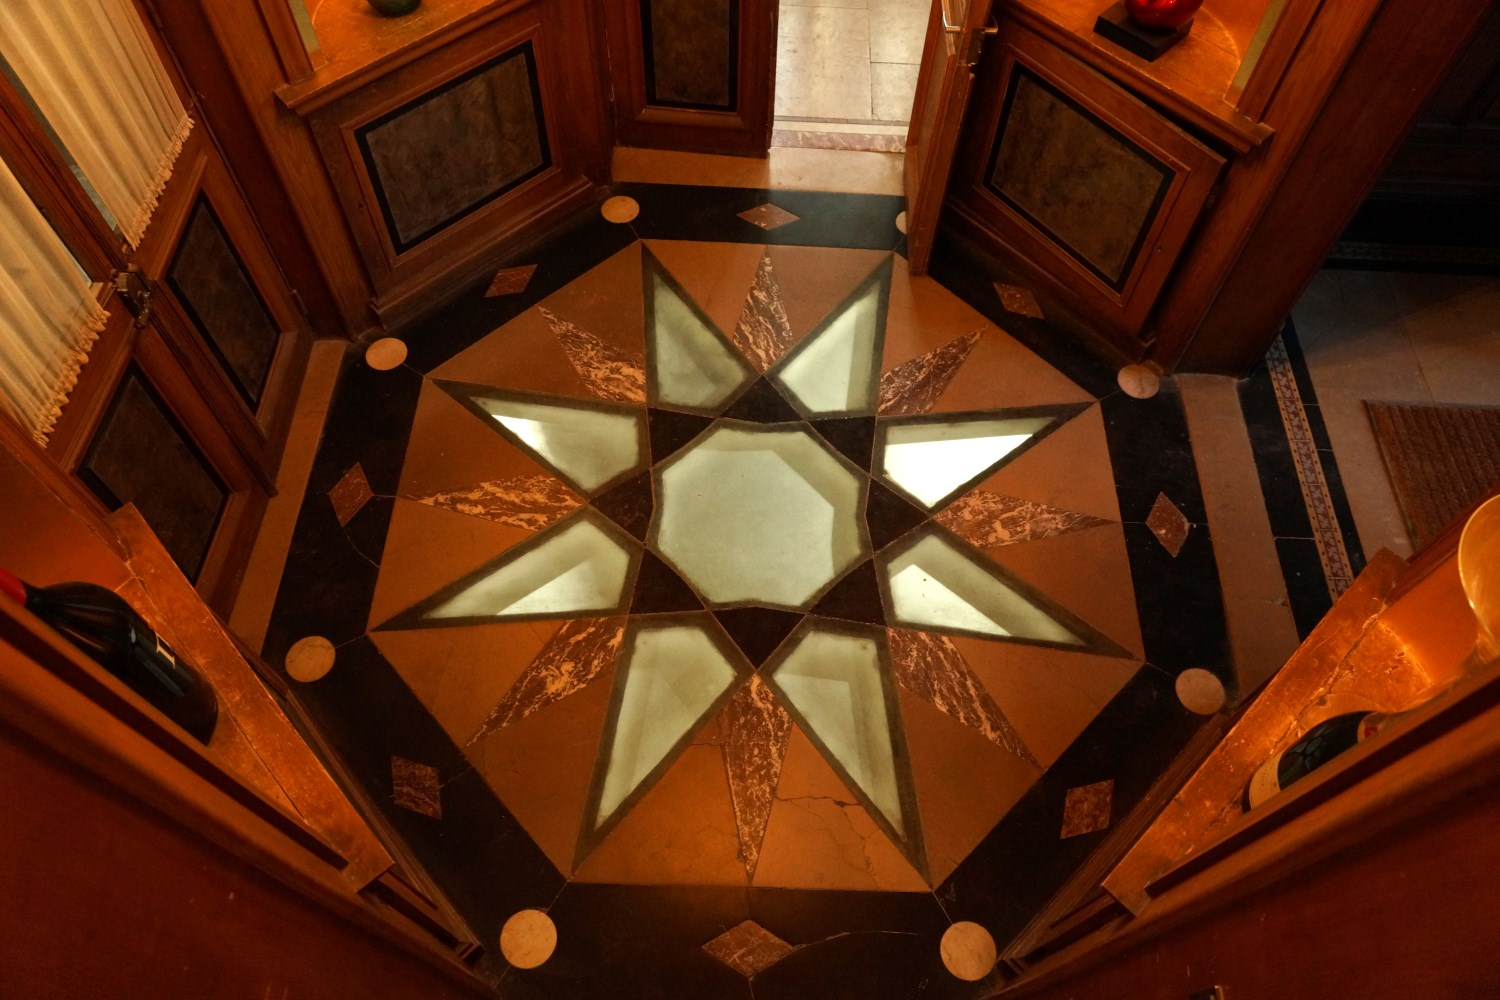 The Hallines Star floor decoration